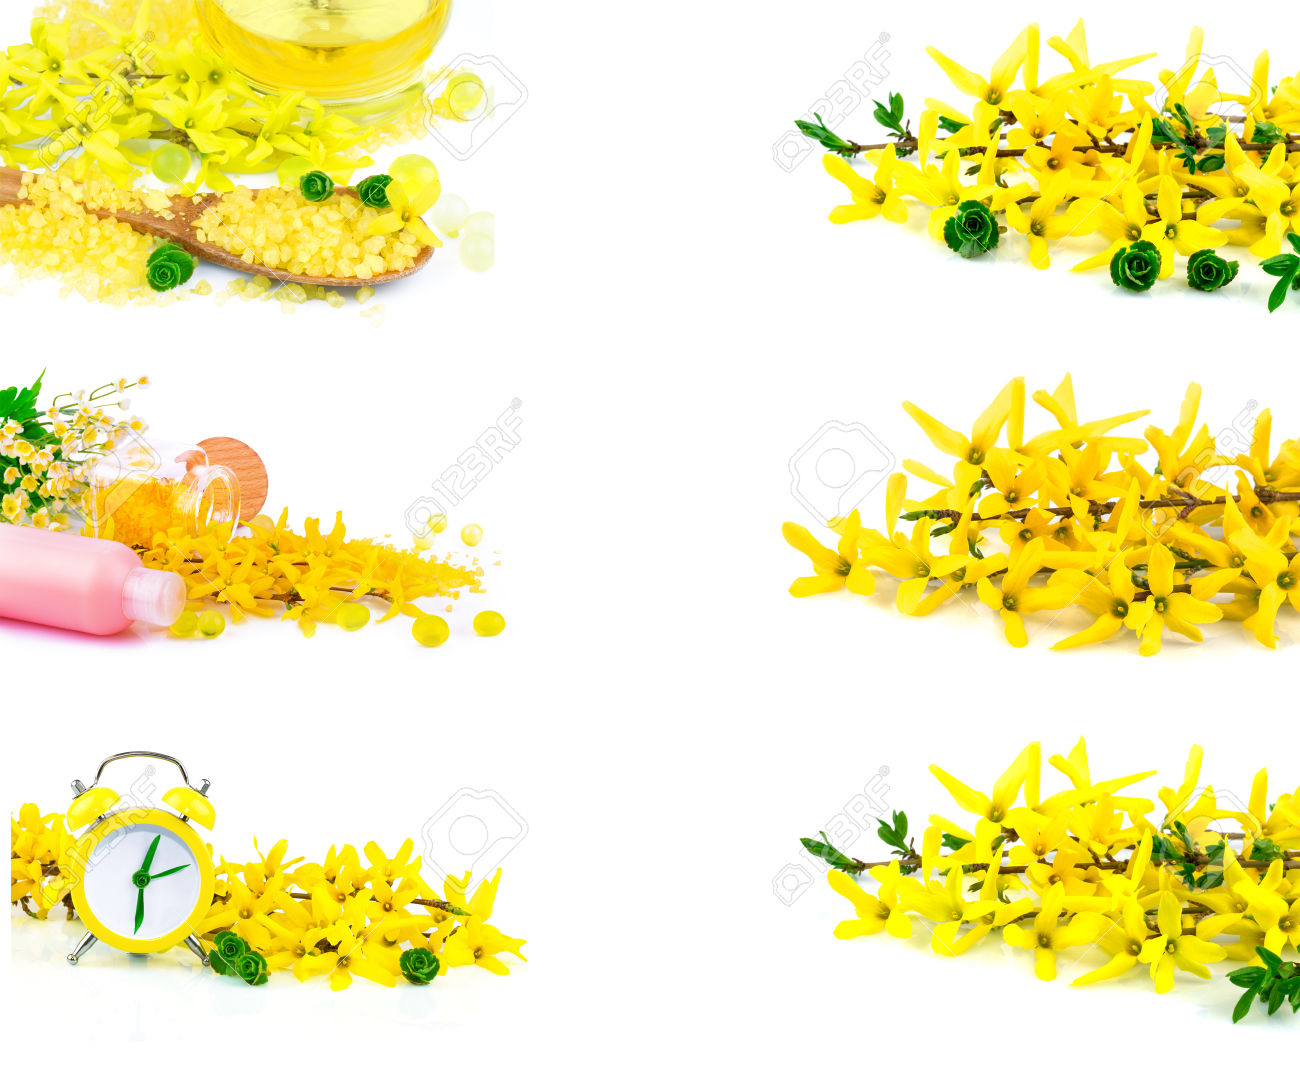 Macro View Of Spa Product With Spring Flowers Isolated On White.